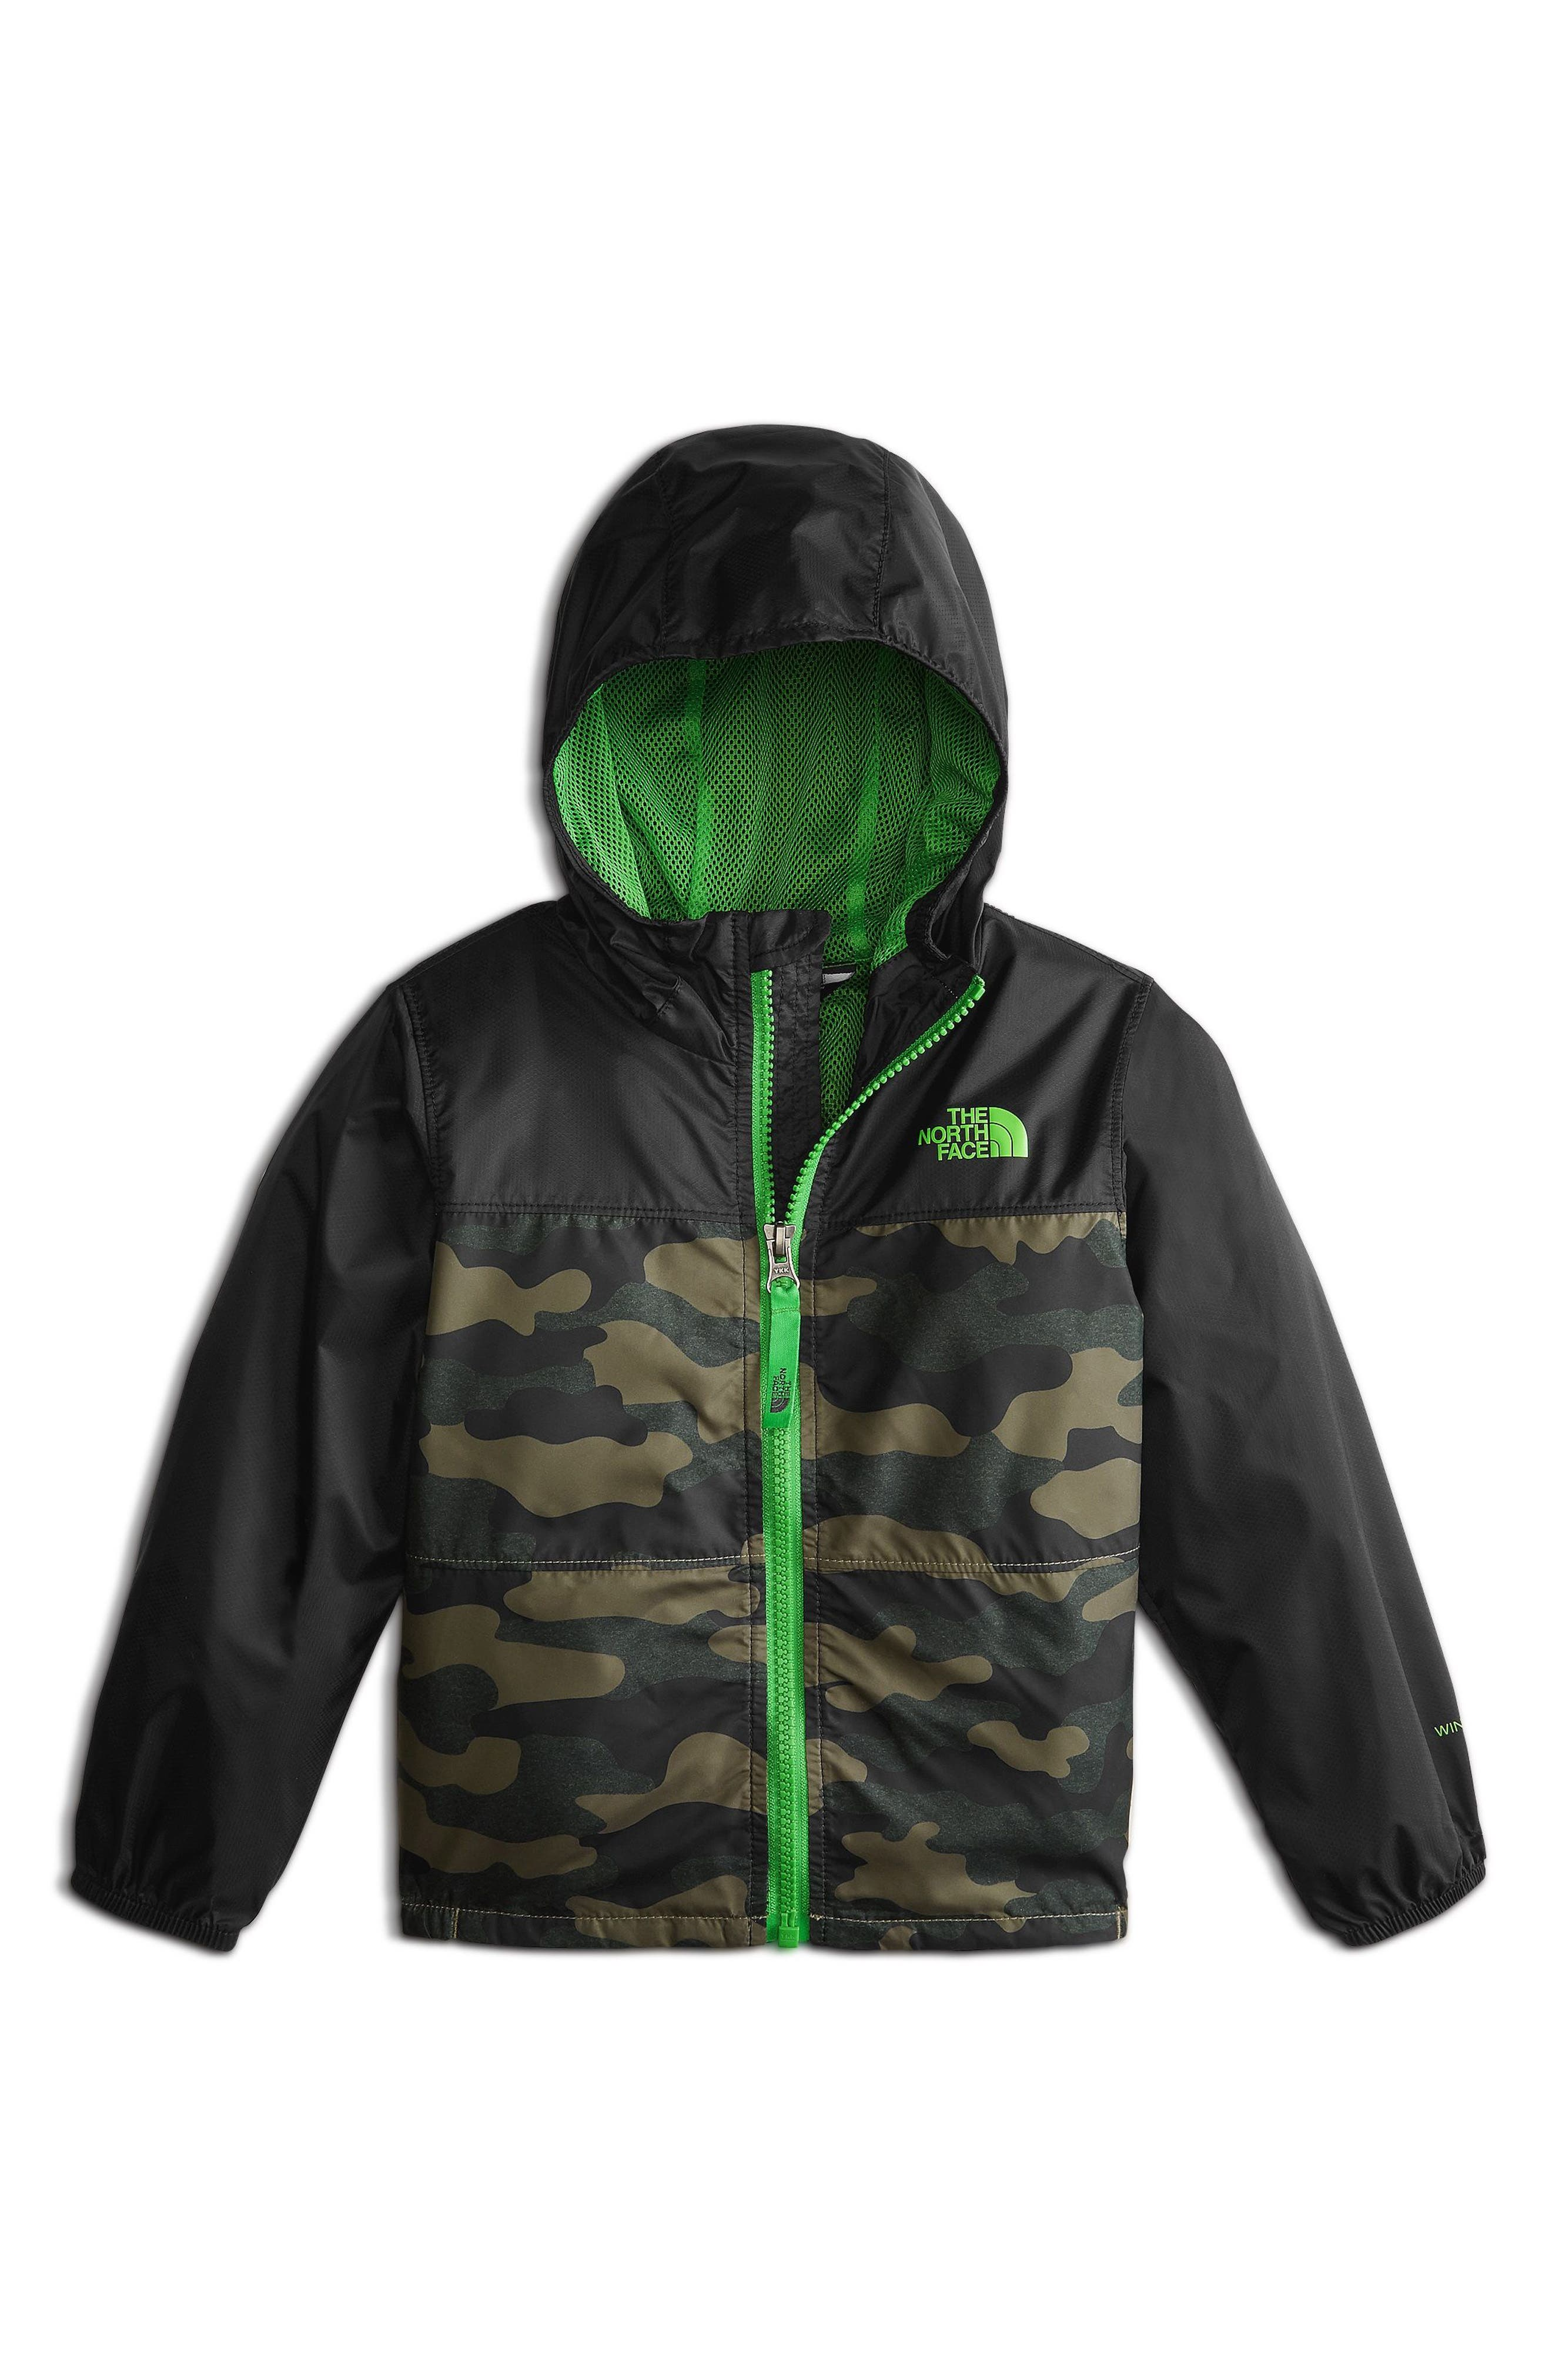 Flurry Hooded Windbreaker Jacket,                             Main thumbnail 1, color,                             Burnt Olive Green/ Camo